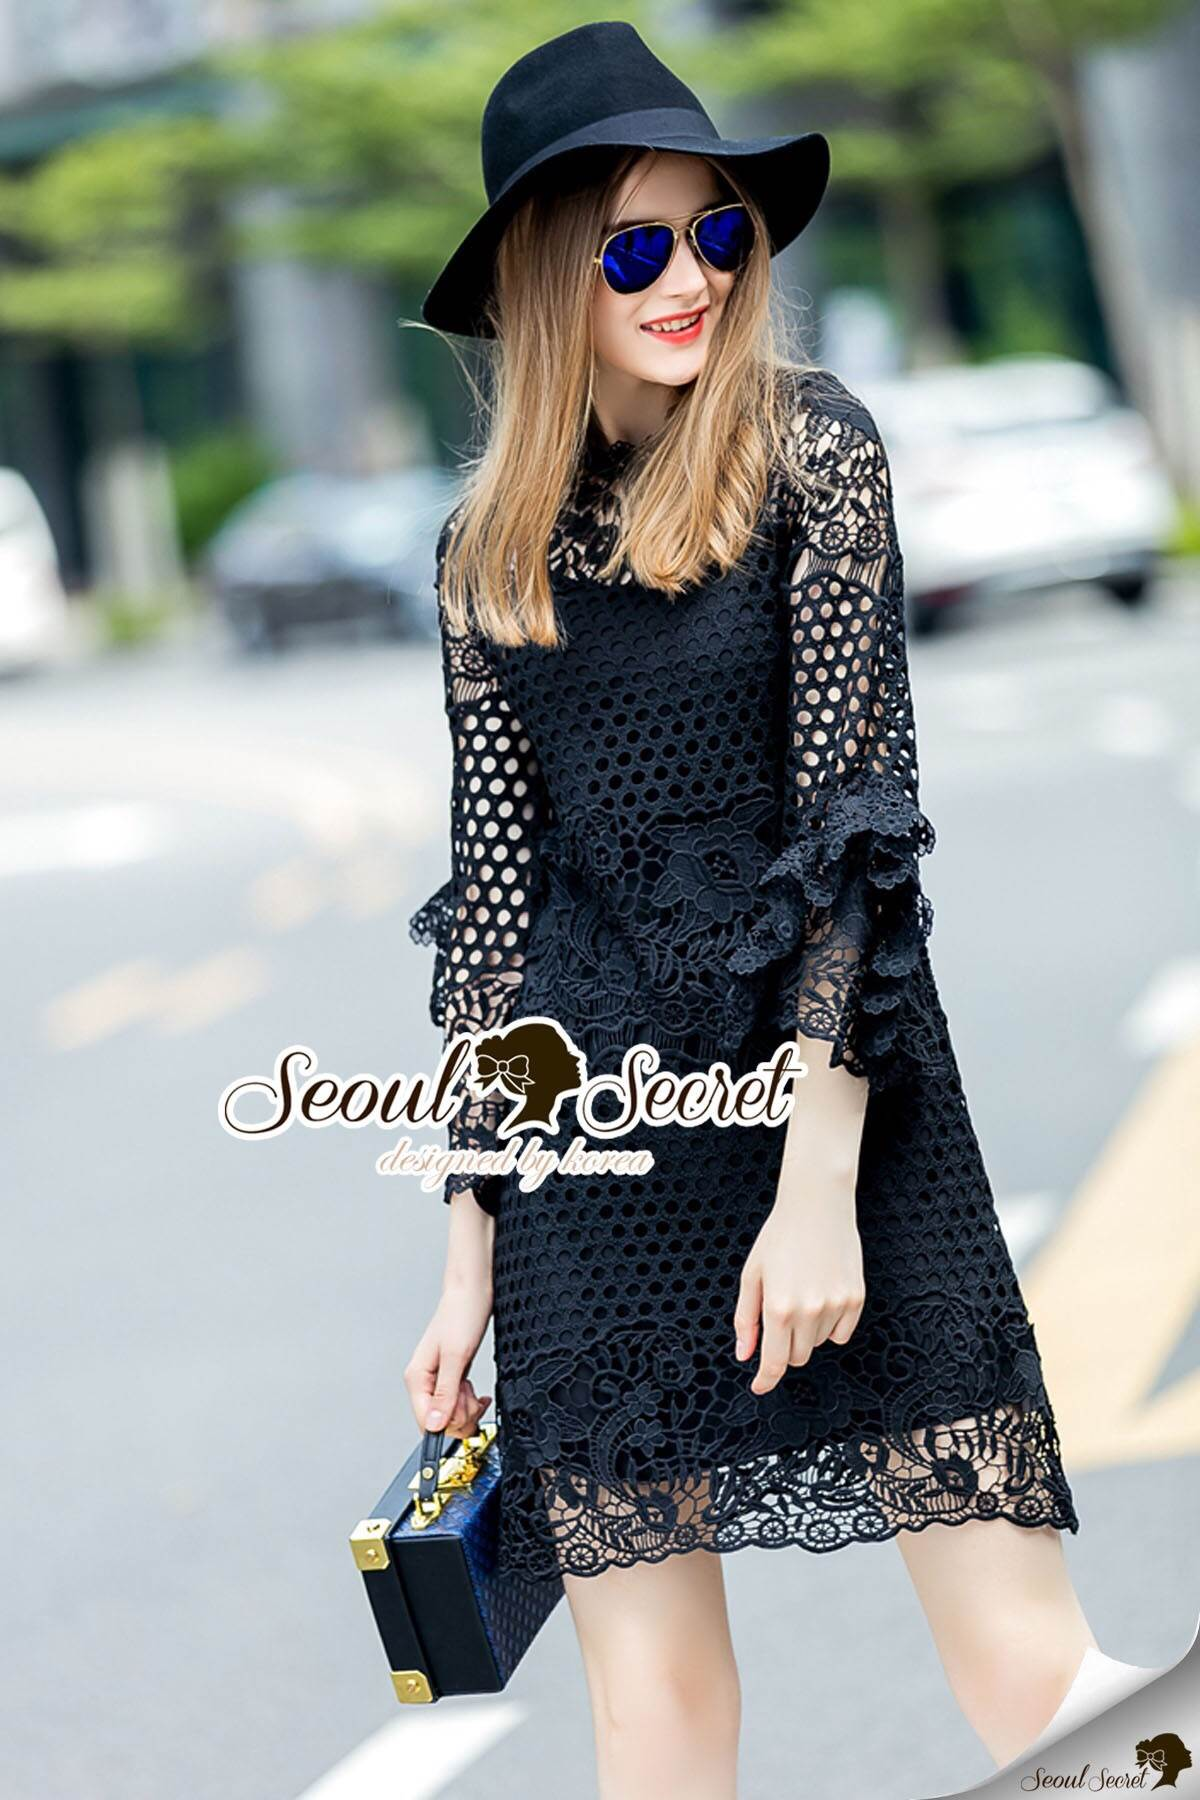 Seoul Secret Say's... Layer Sleeve Princess Lace Dress